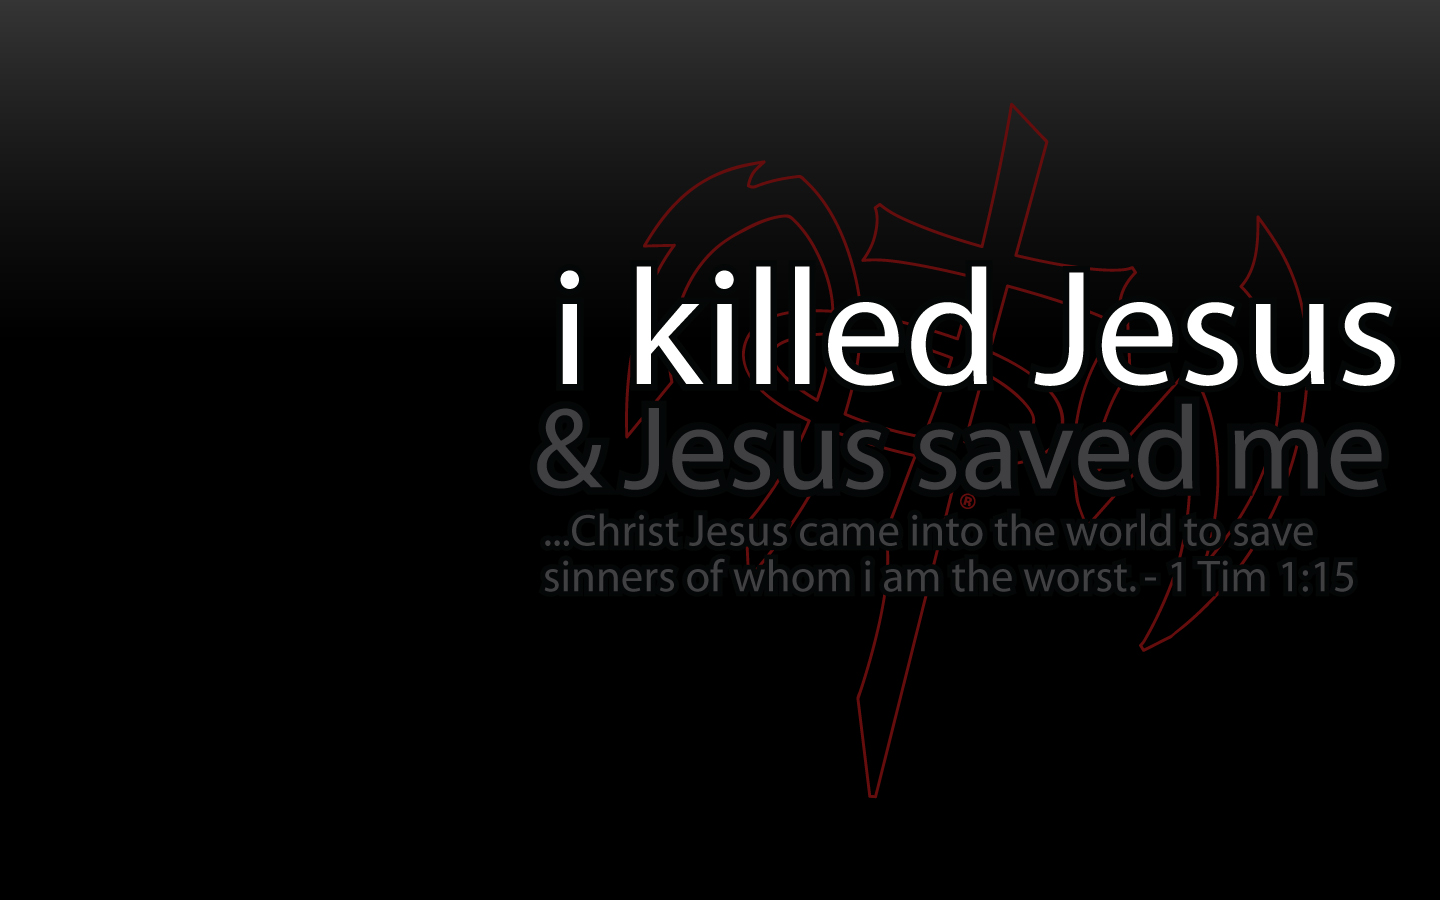 Cute Godly Wallpapers 1 Timothy 1 15 Wallpaper Christian Wallpapers And